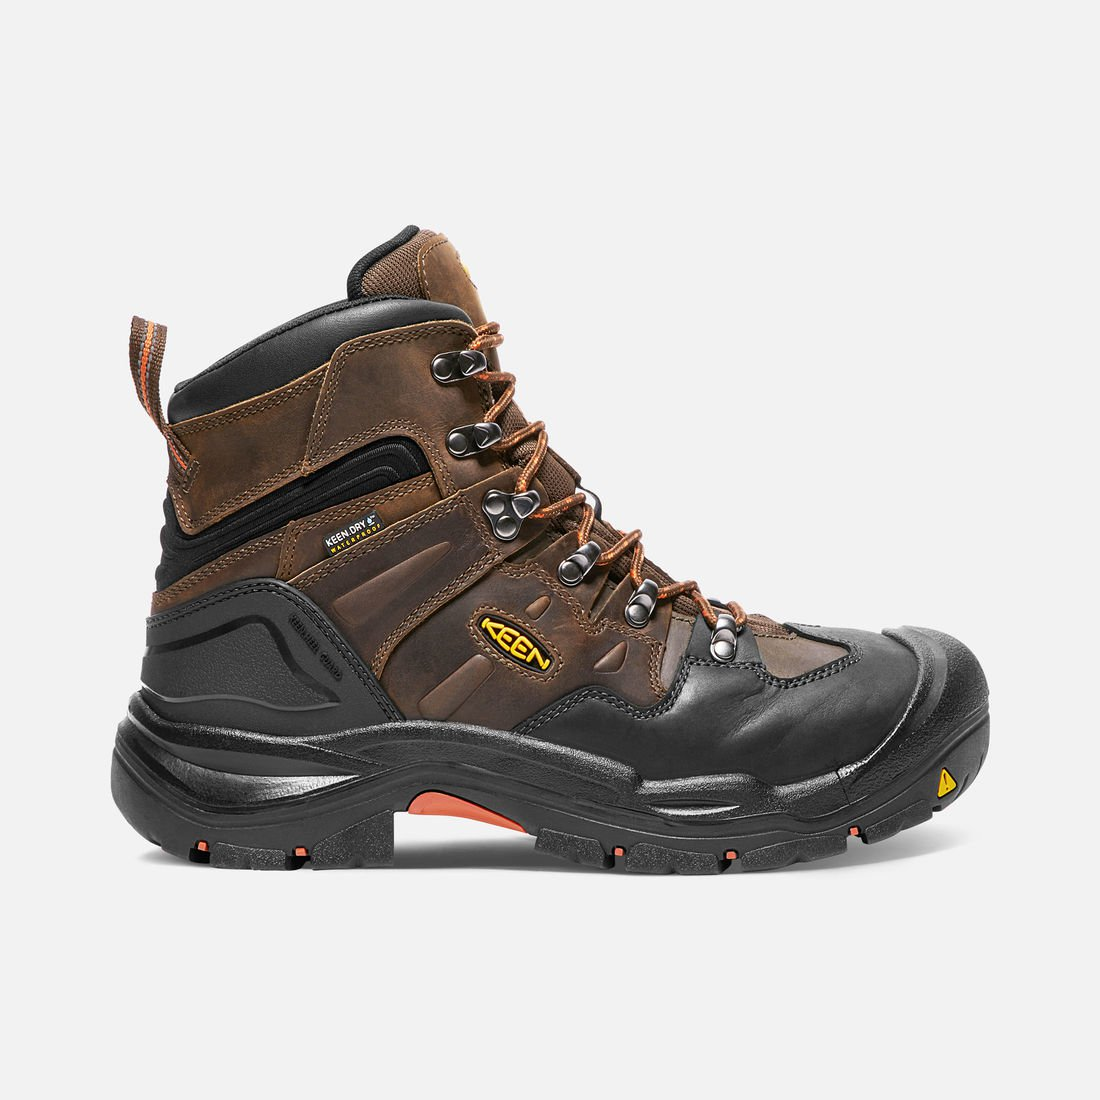 Keen 1018023 Men S Coburg 6 Quot Waterproof Boot Steel Toe